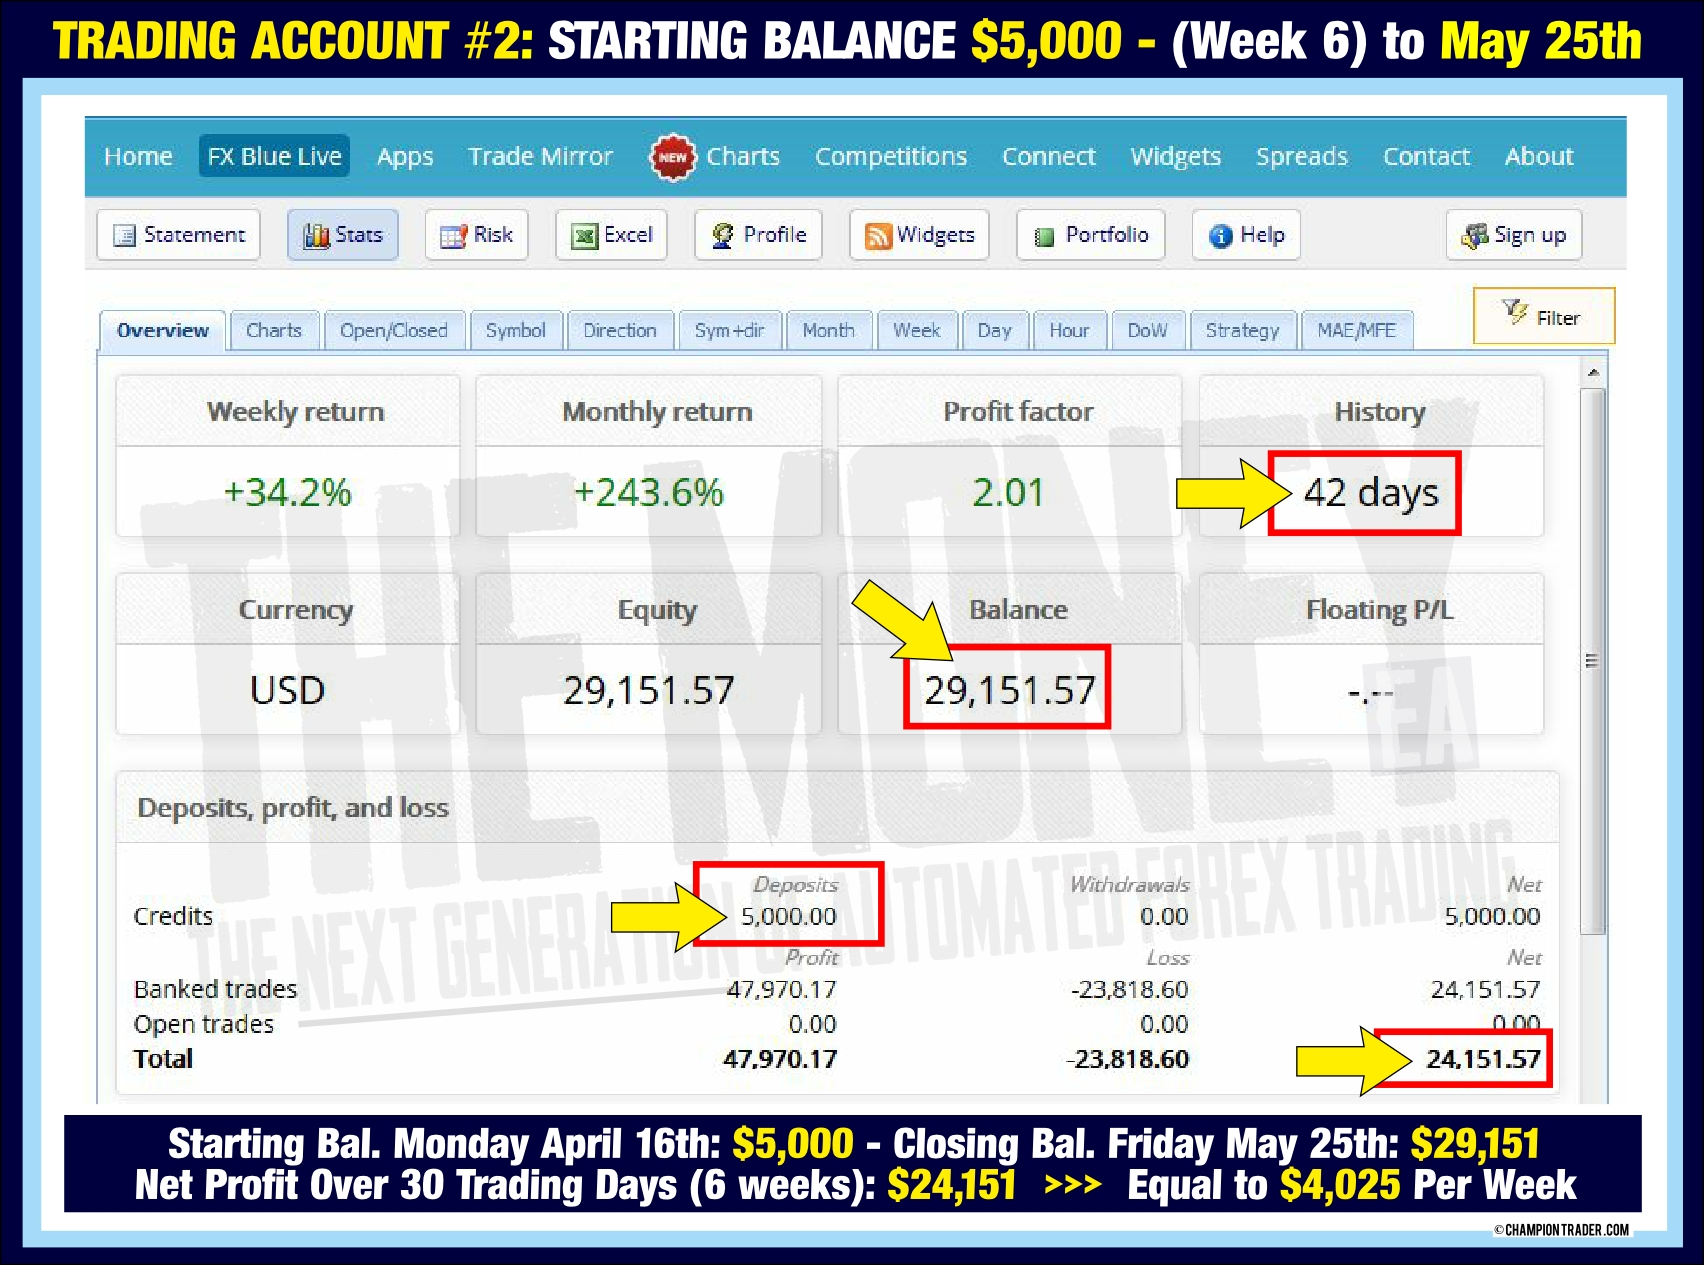 6 weeks trading to May 25th with The Money expert advisor forex trading v72-3